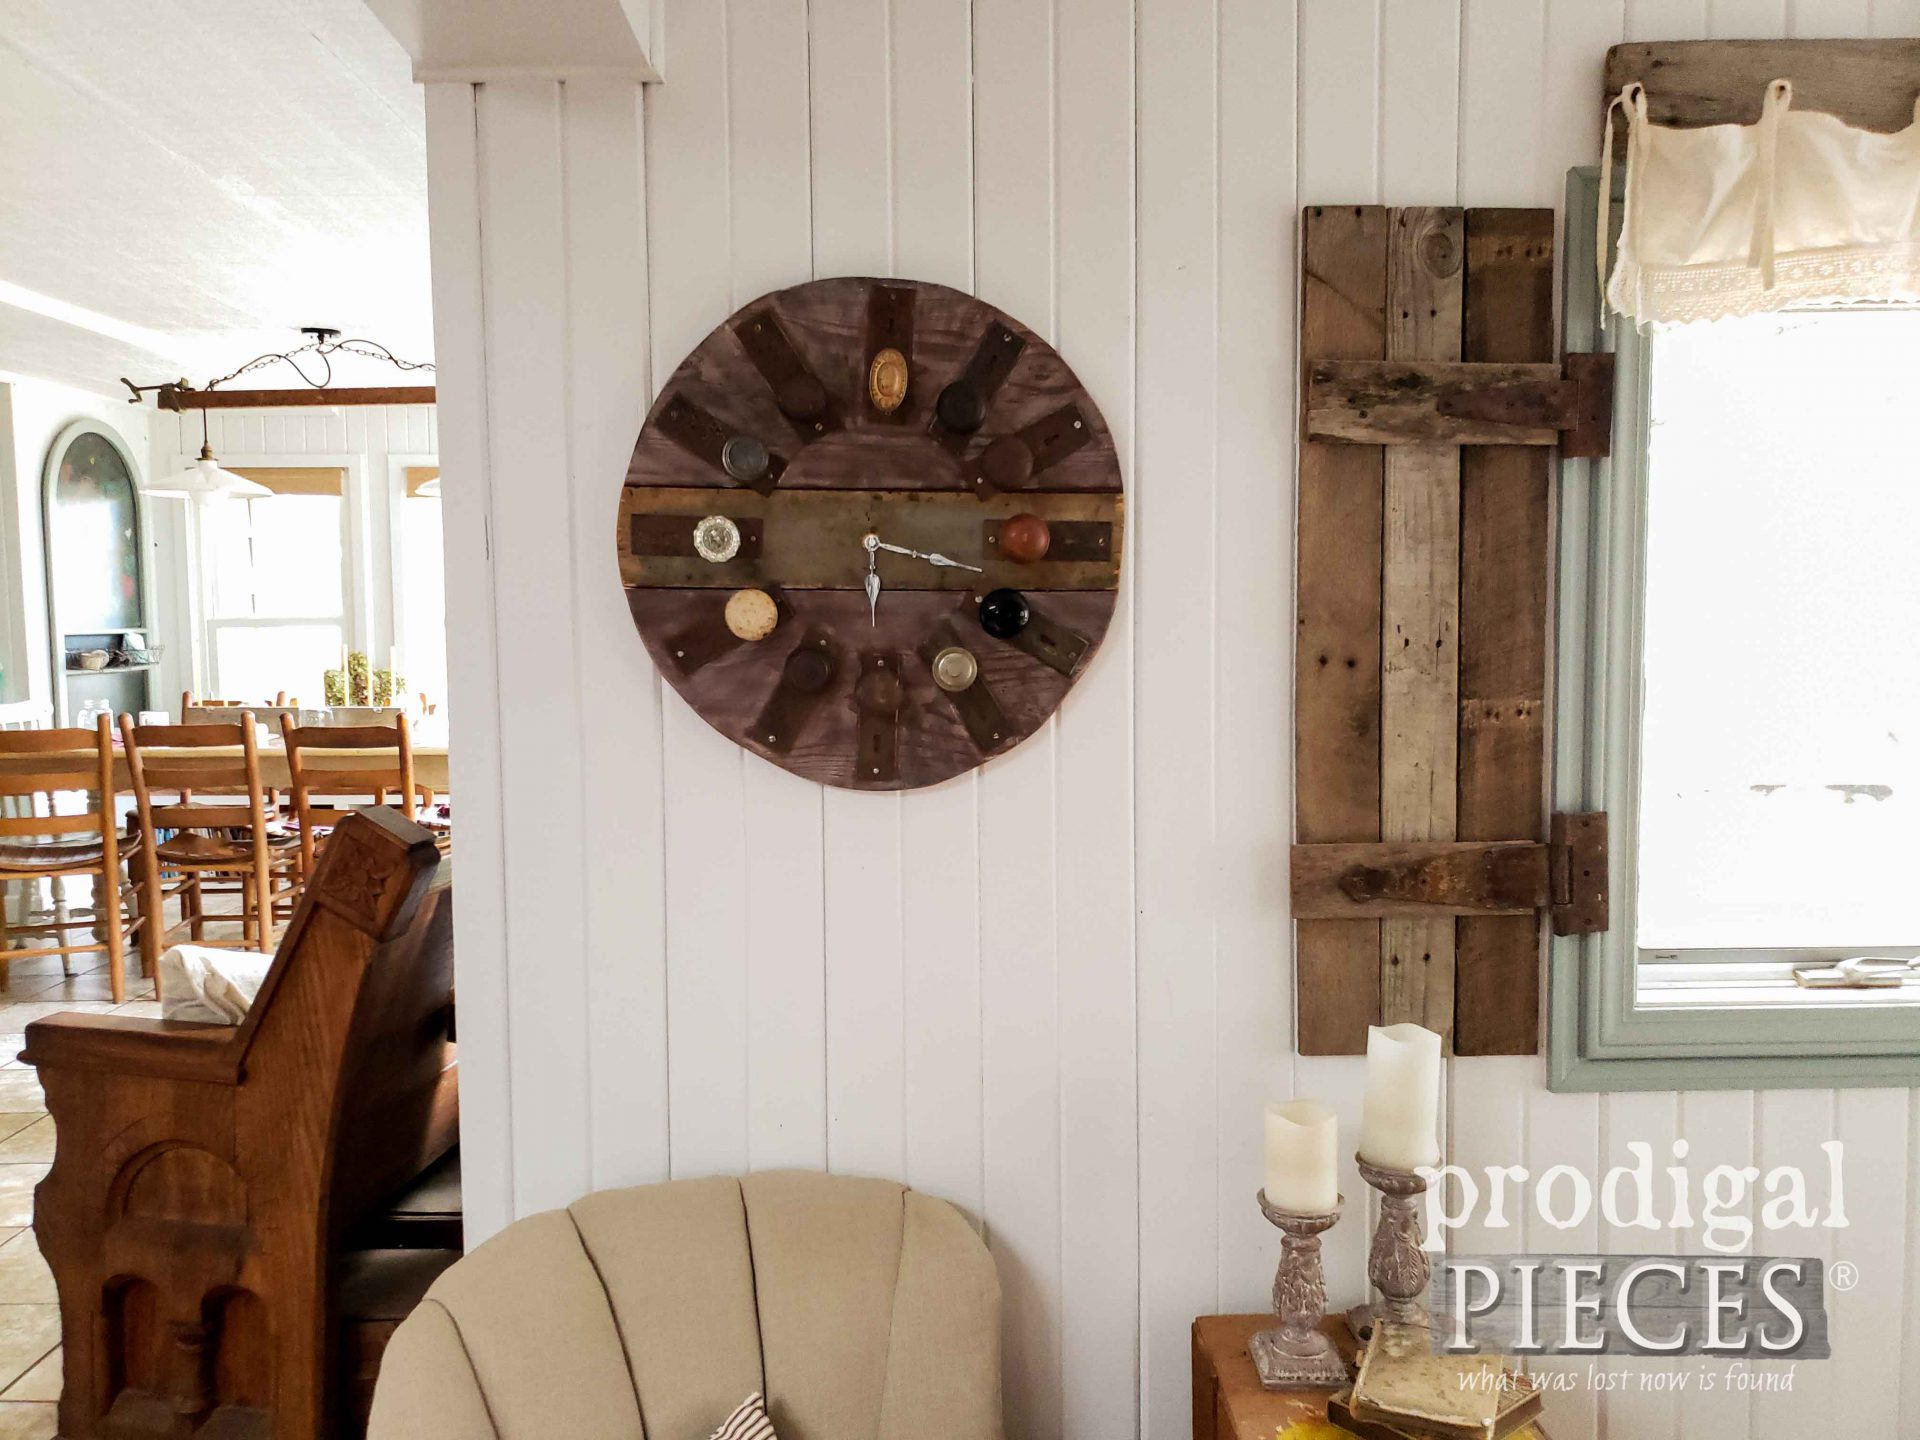 Rustic Reclaimed Wall Clock from Salvaged Parts by Larissa of Prodigal Pieces | prodigalpieces.com #prodigalpieces #rustic #farmhouse #home #clock #homedecor